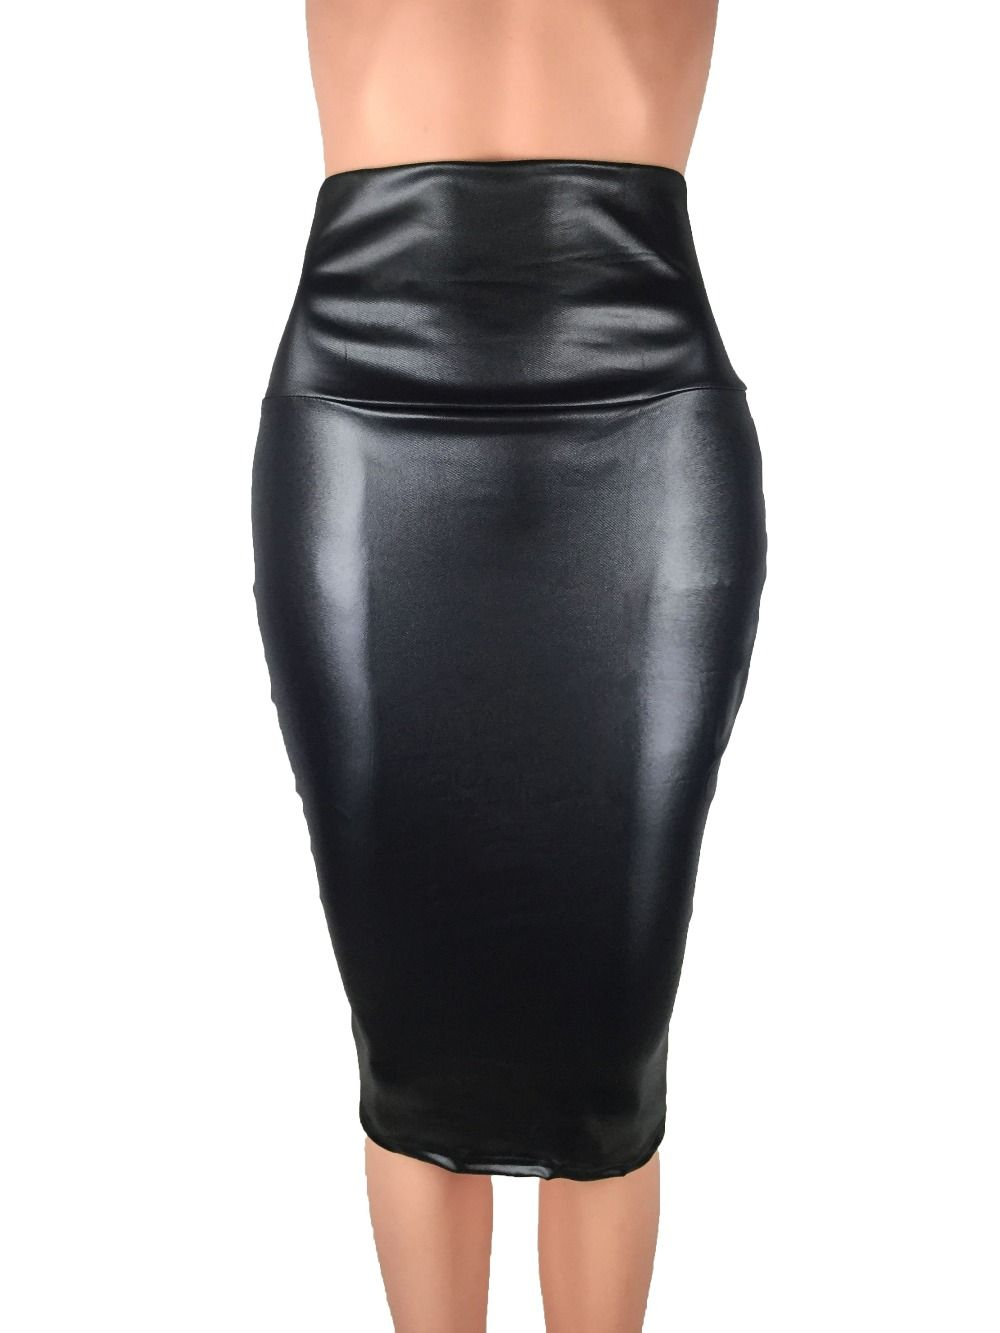 fea8797aca Bohocotol 2018 pencil faux leather skirt women casual plus size clothing  chic elegant sexy fitness black midi pencil skirts Price: 10.86 & FREE  Shipping ...